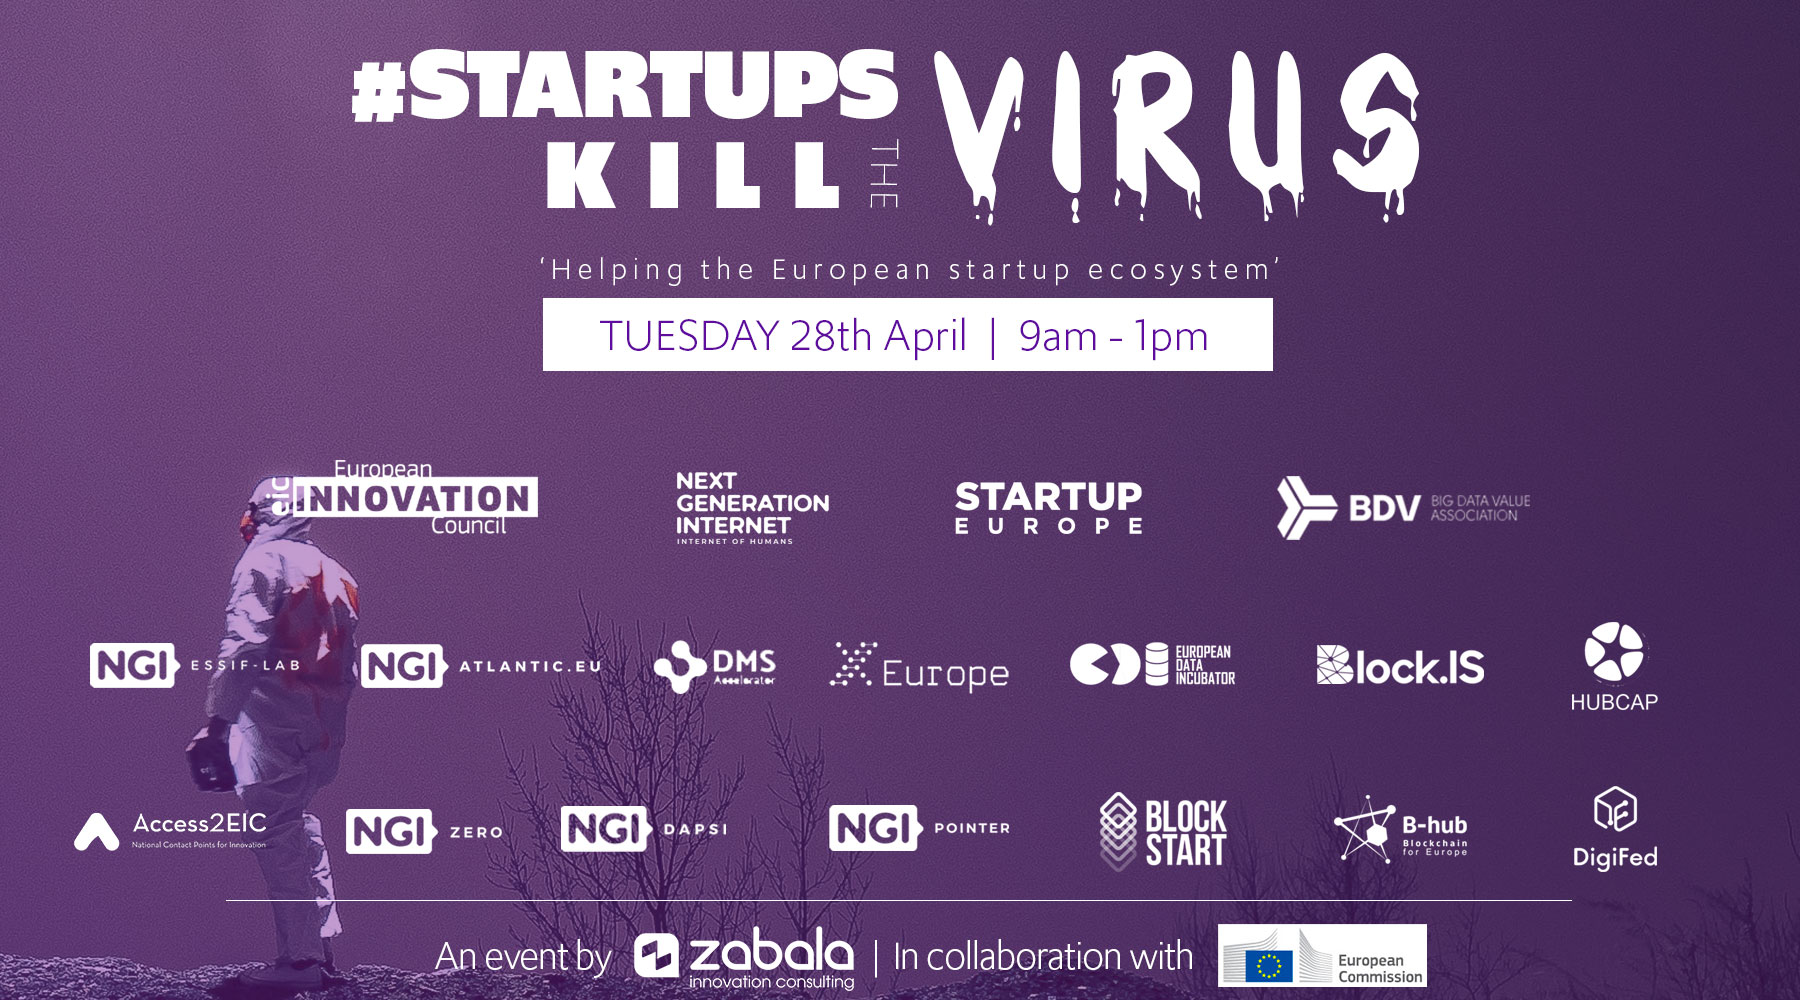 #StartupsKillTheVirus: Online event to support tech innovators in time of COV19 crisis